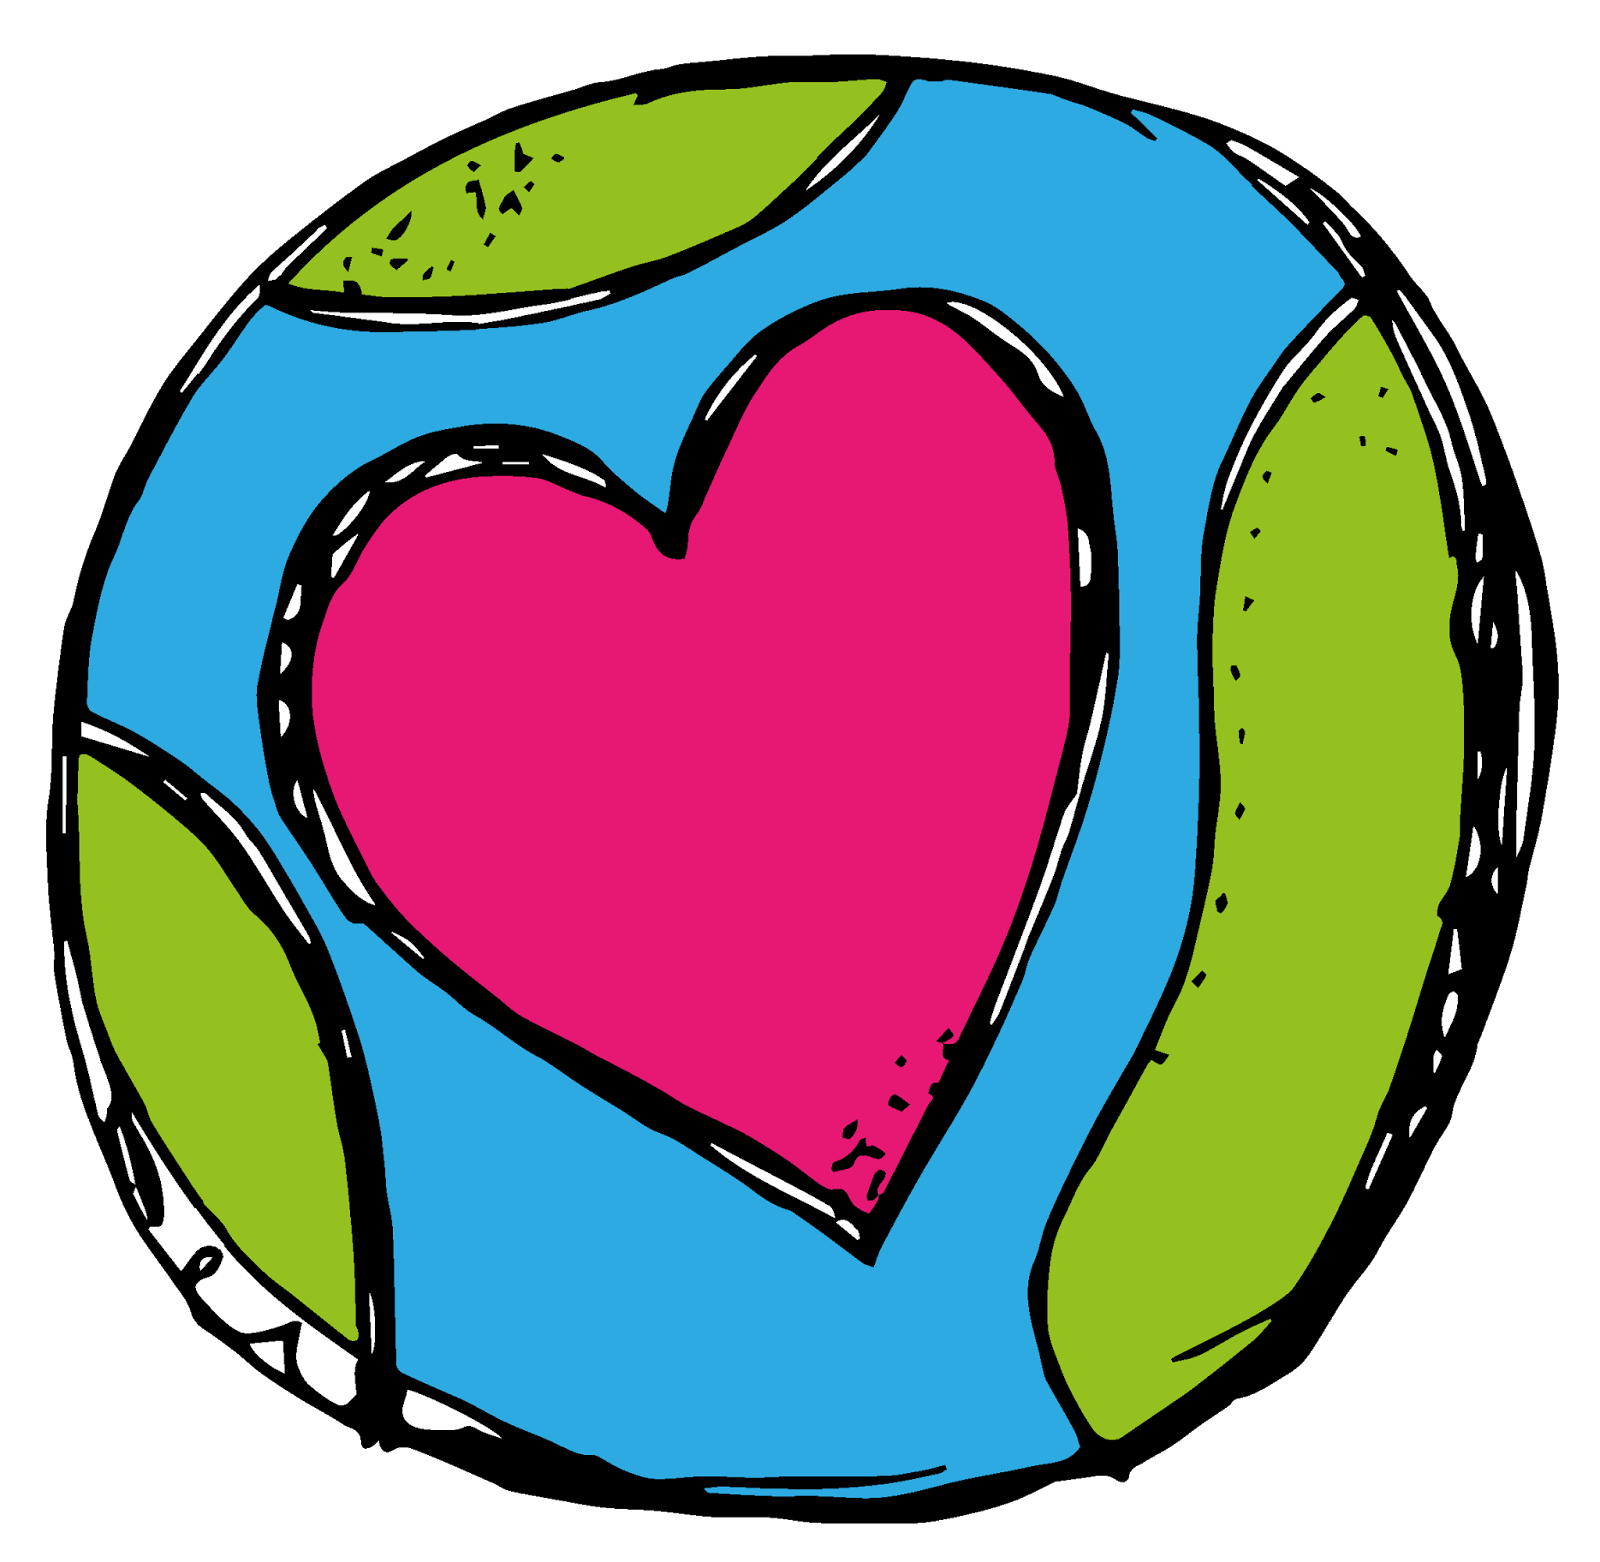 Globe clipart heart.  collection of earth